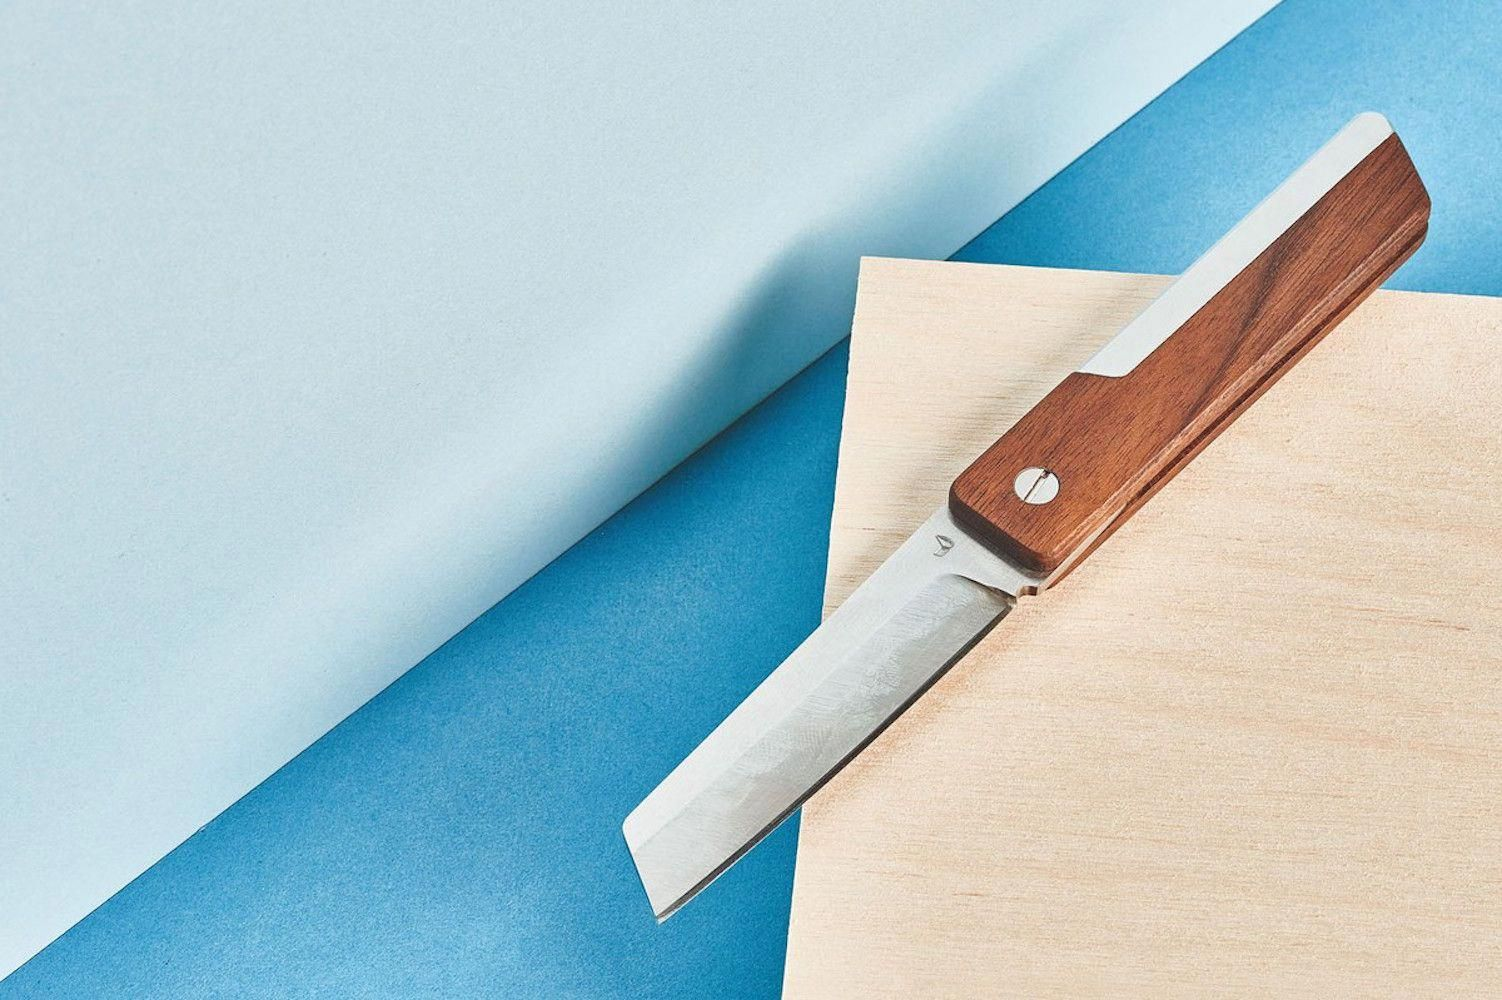 The best minimalist knives for everyday carry pocket knife